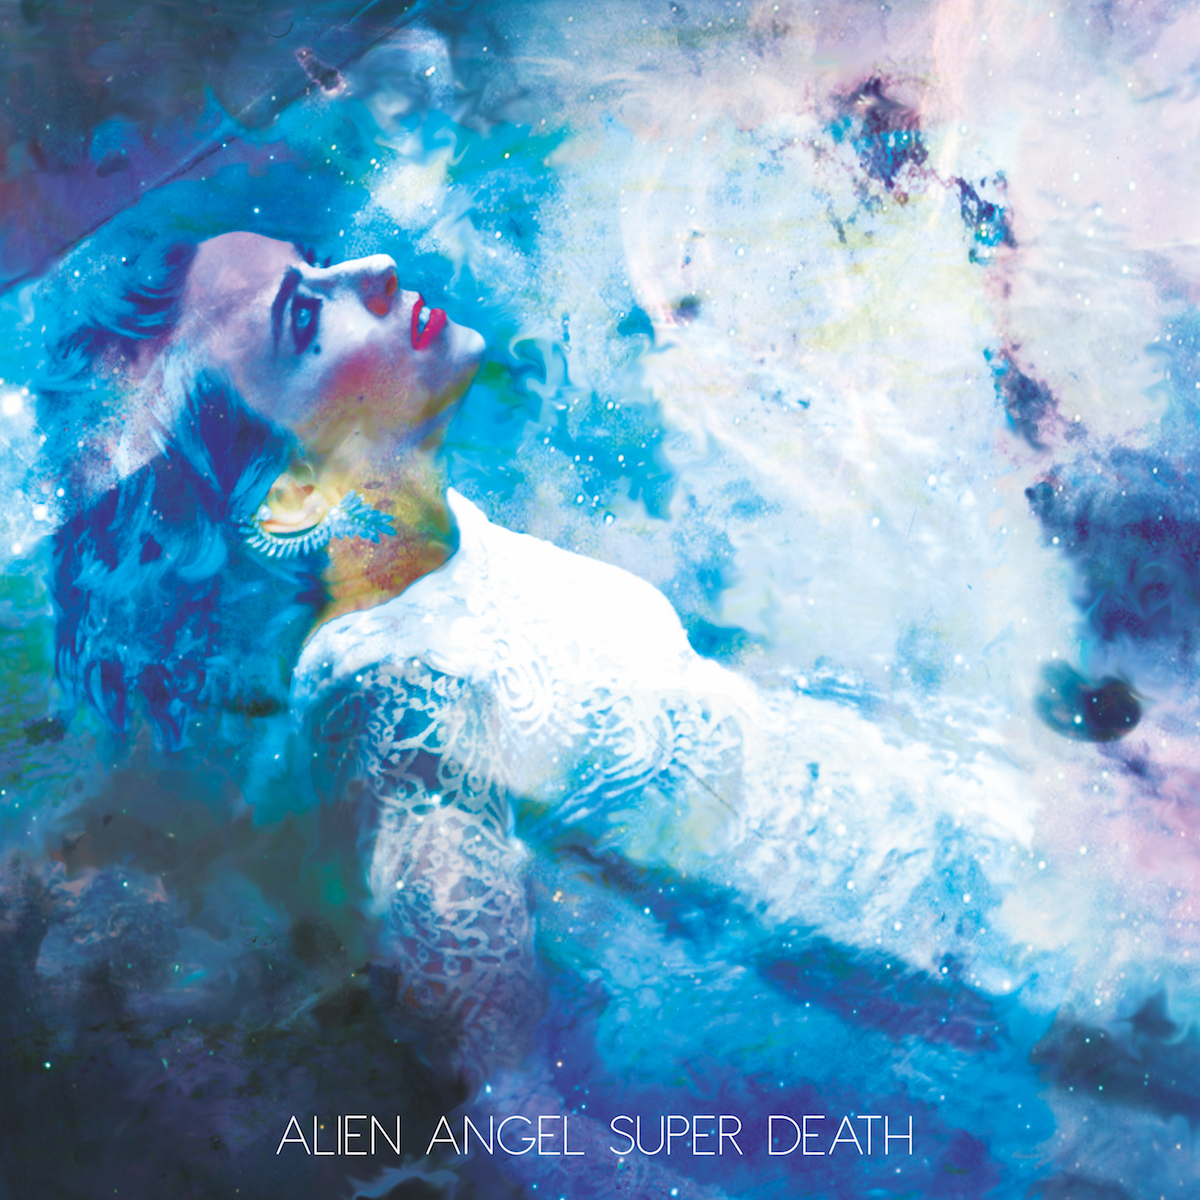 Promisedfieldcover Jpg: Alien Angel Super Death